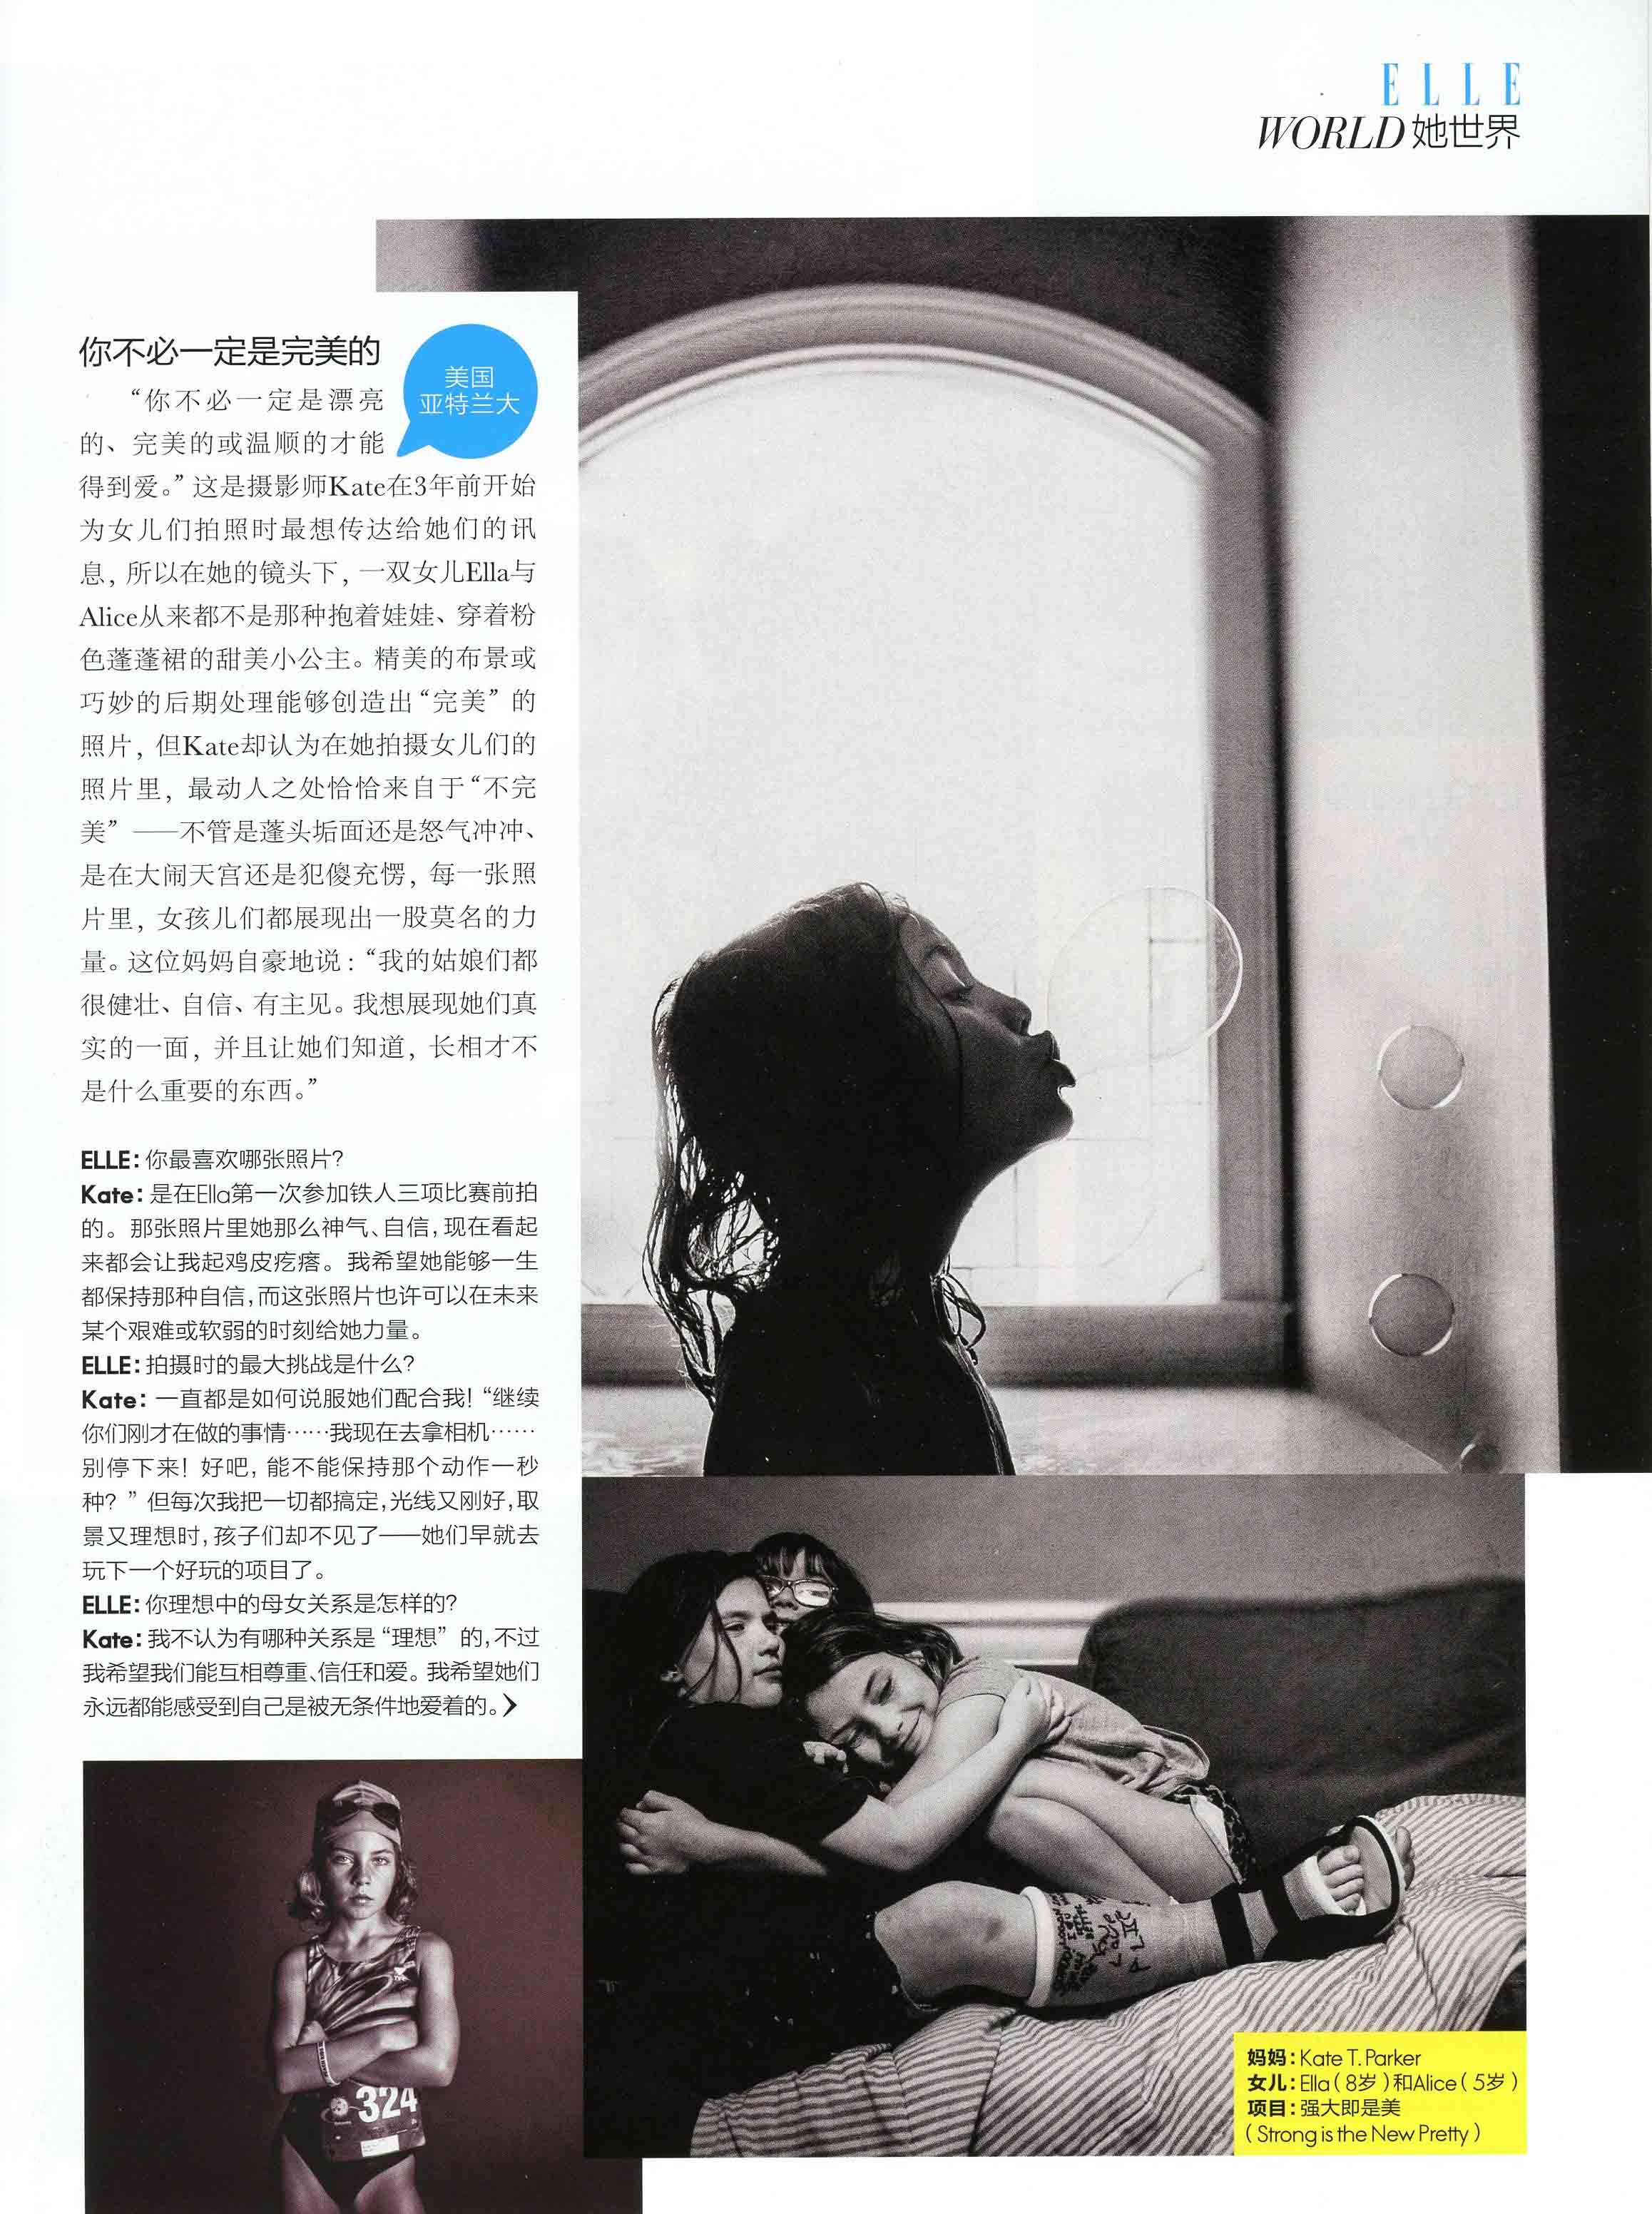 2014 Elle China No 14 pg 107